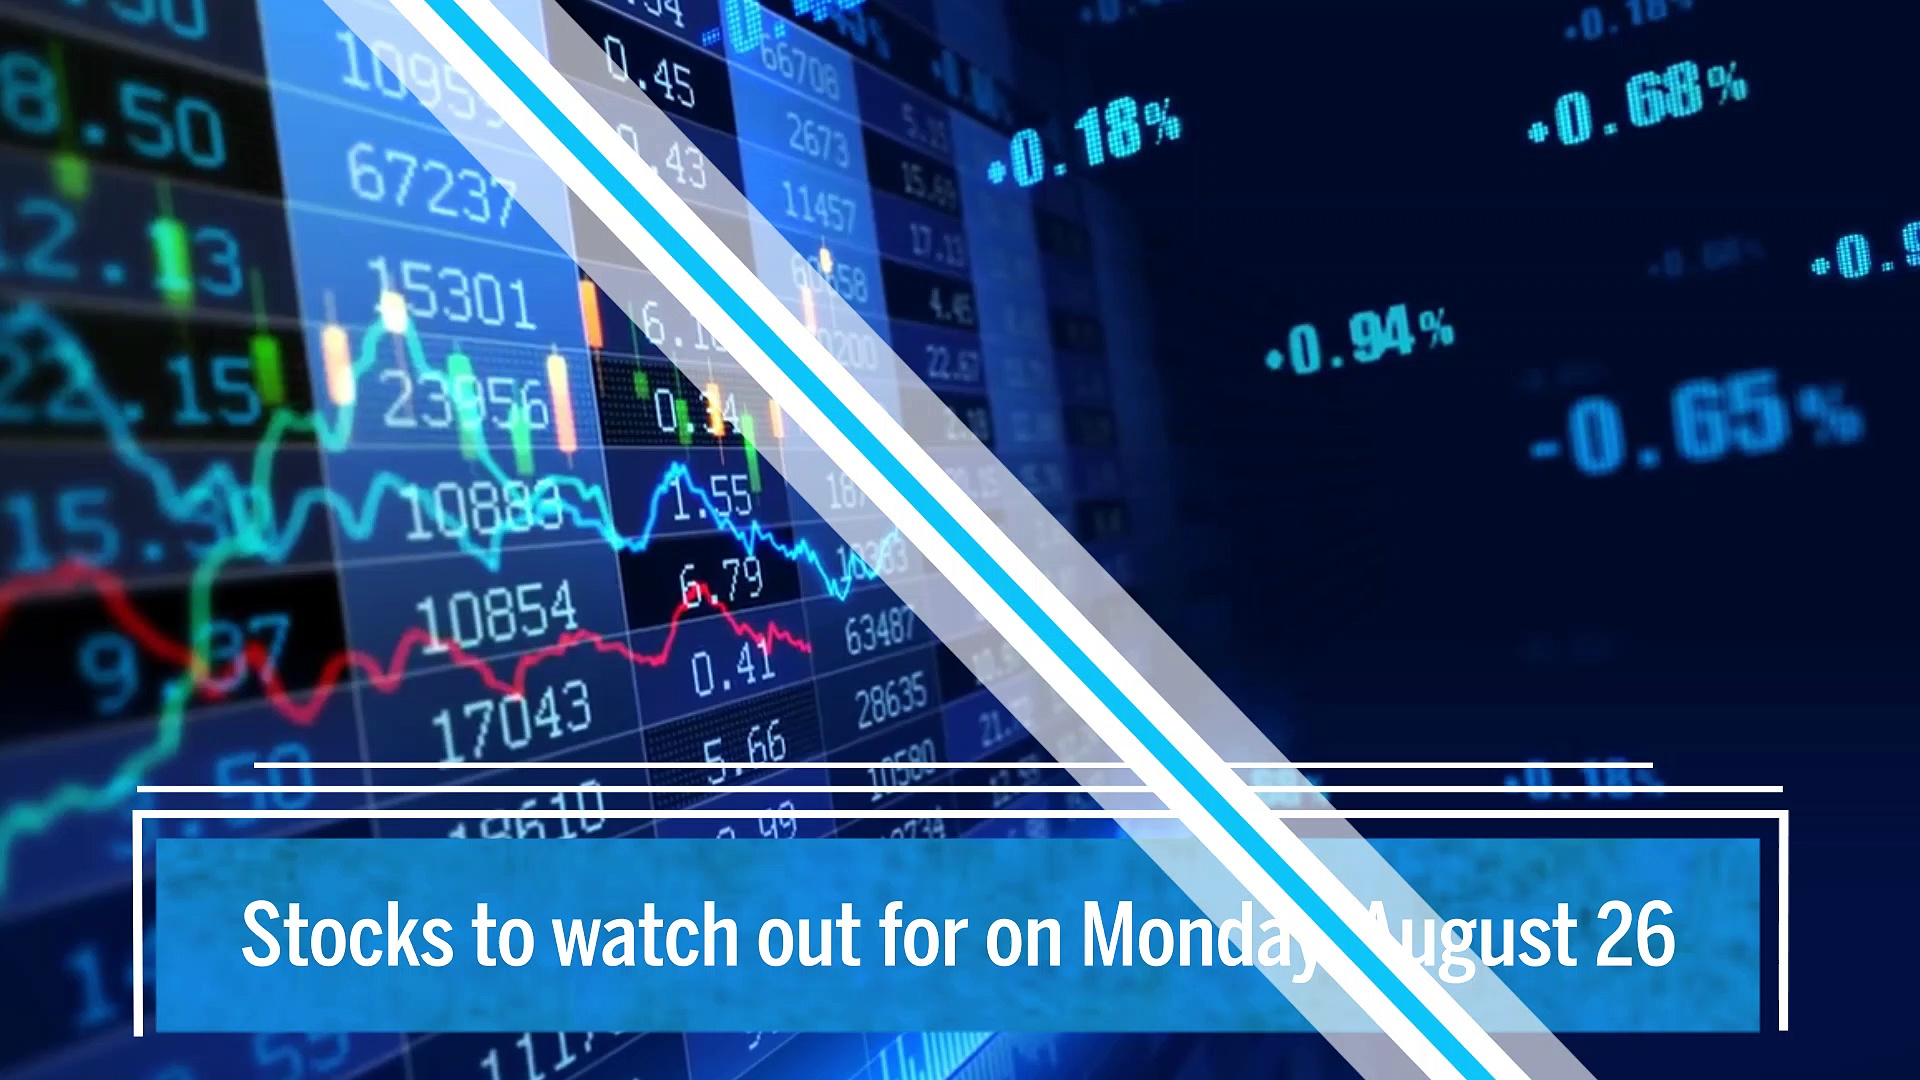 Trade setup for Monday: Keep an eye on these stocks on August 26